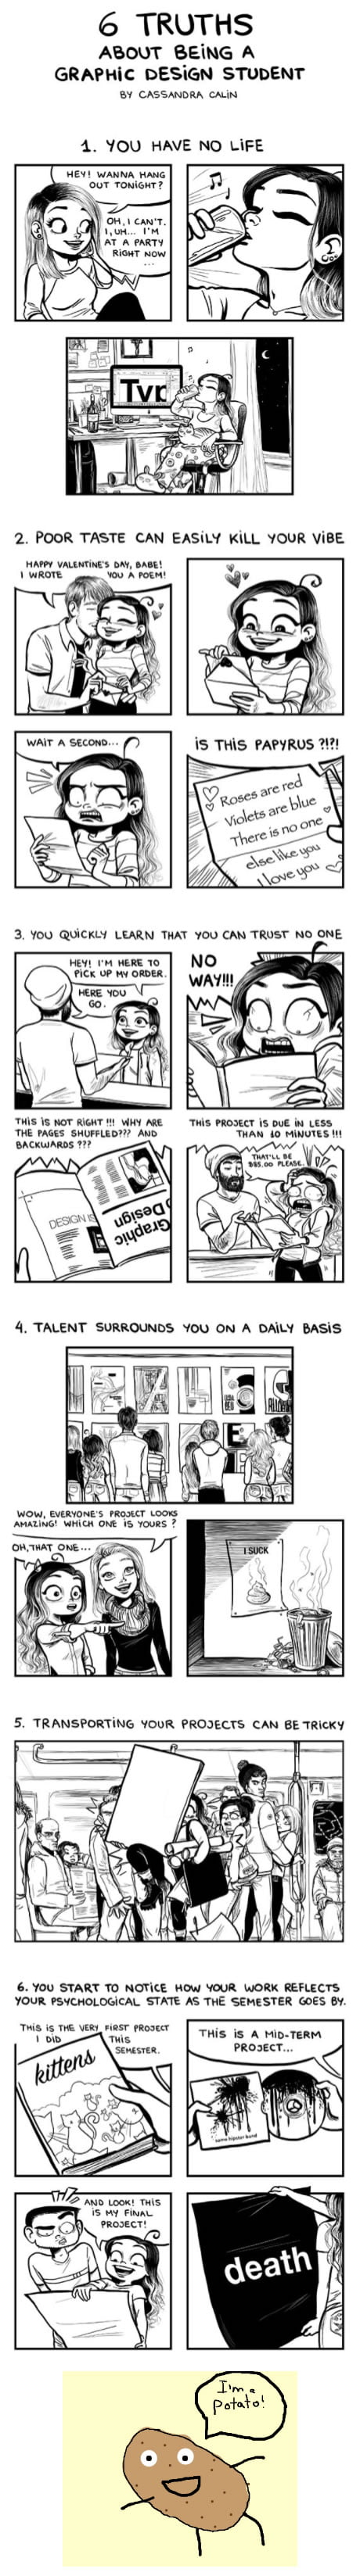 6 truths about being a graphic design student 9gag for Architecture students 9gag